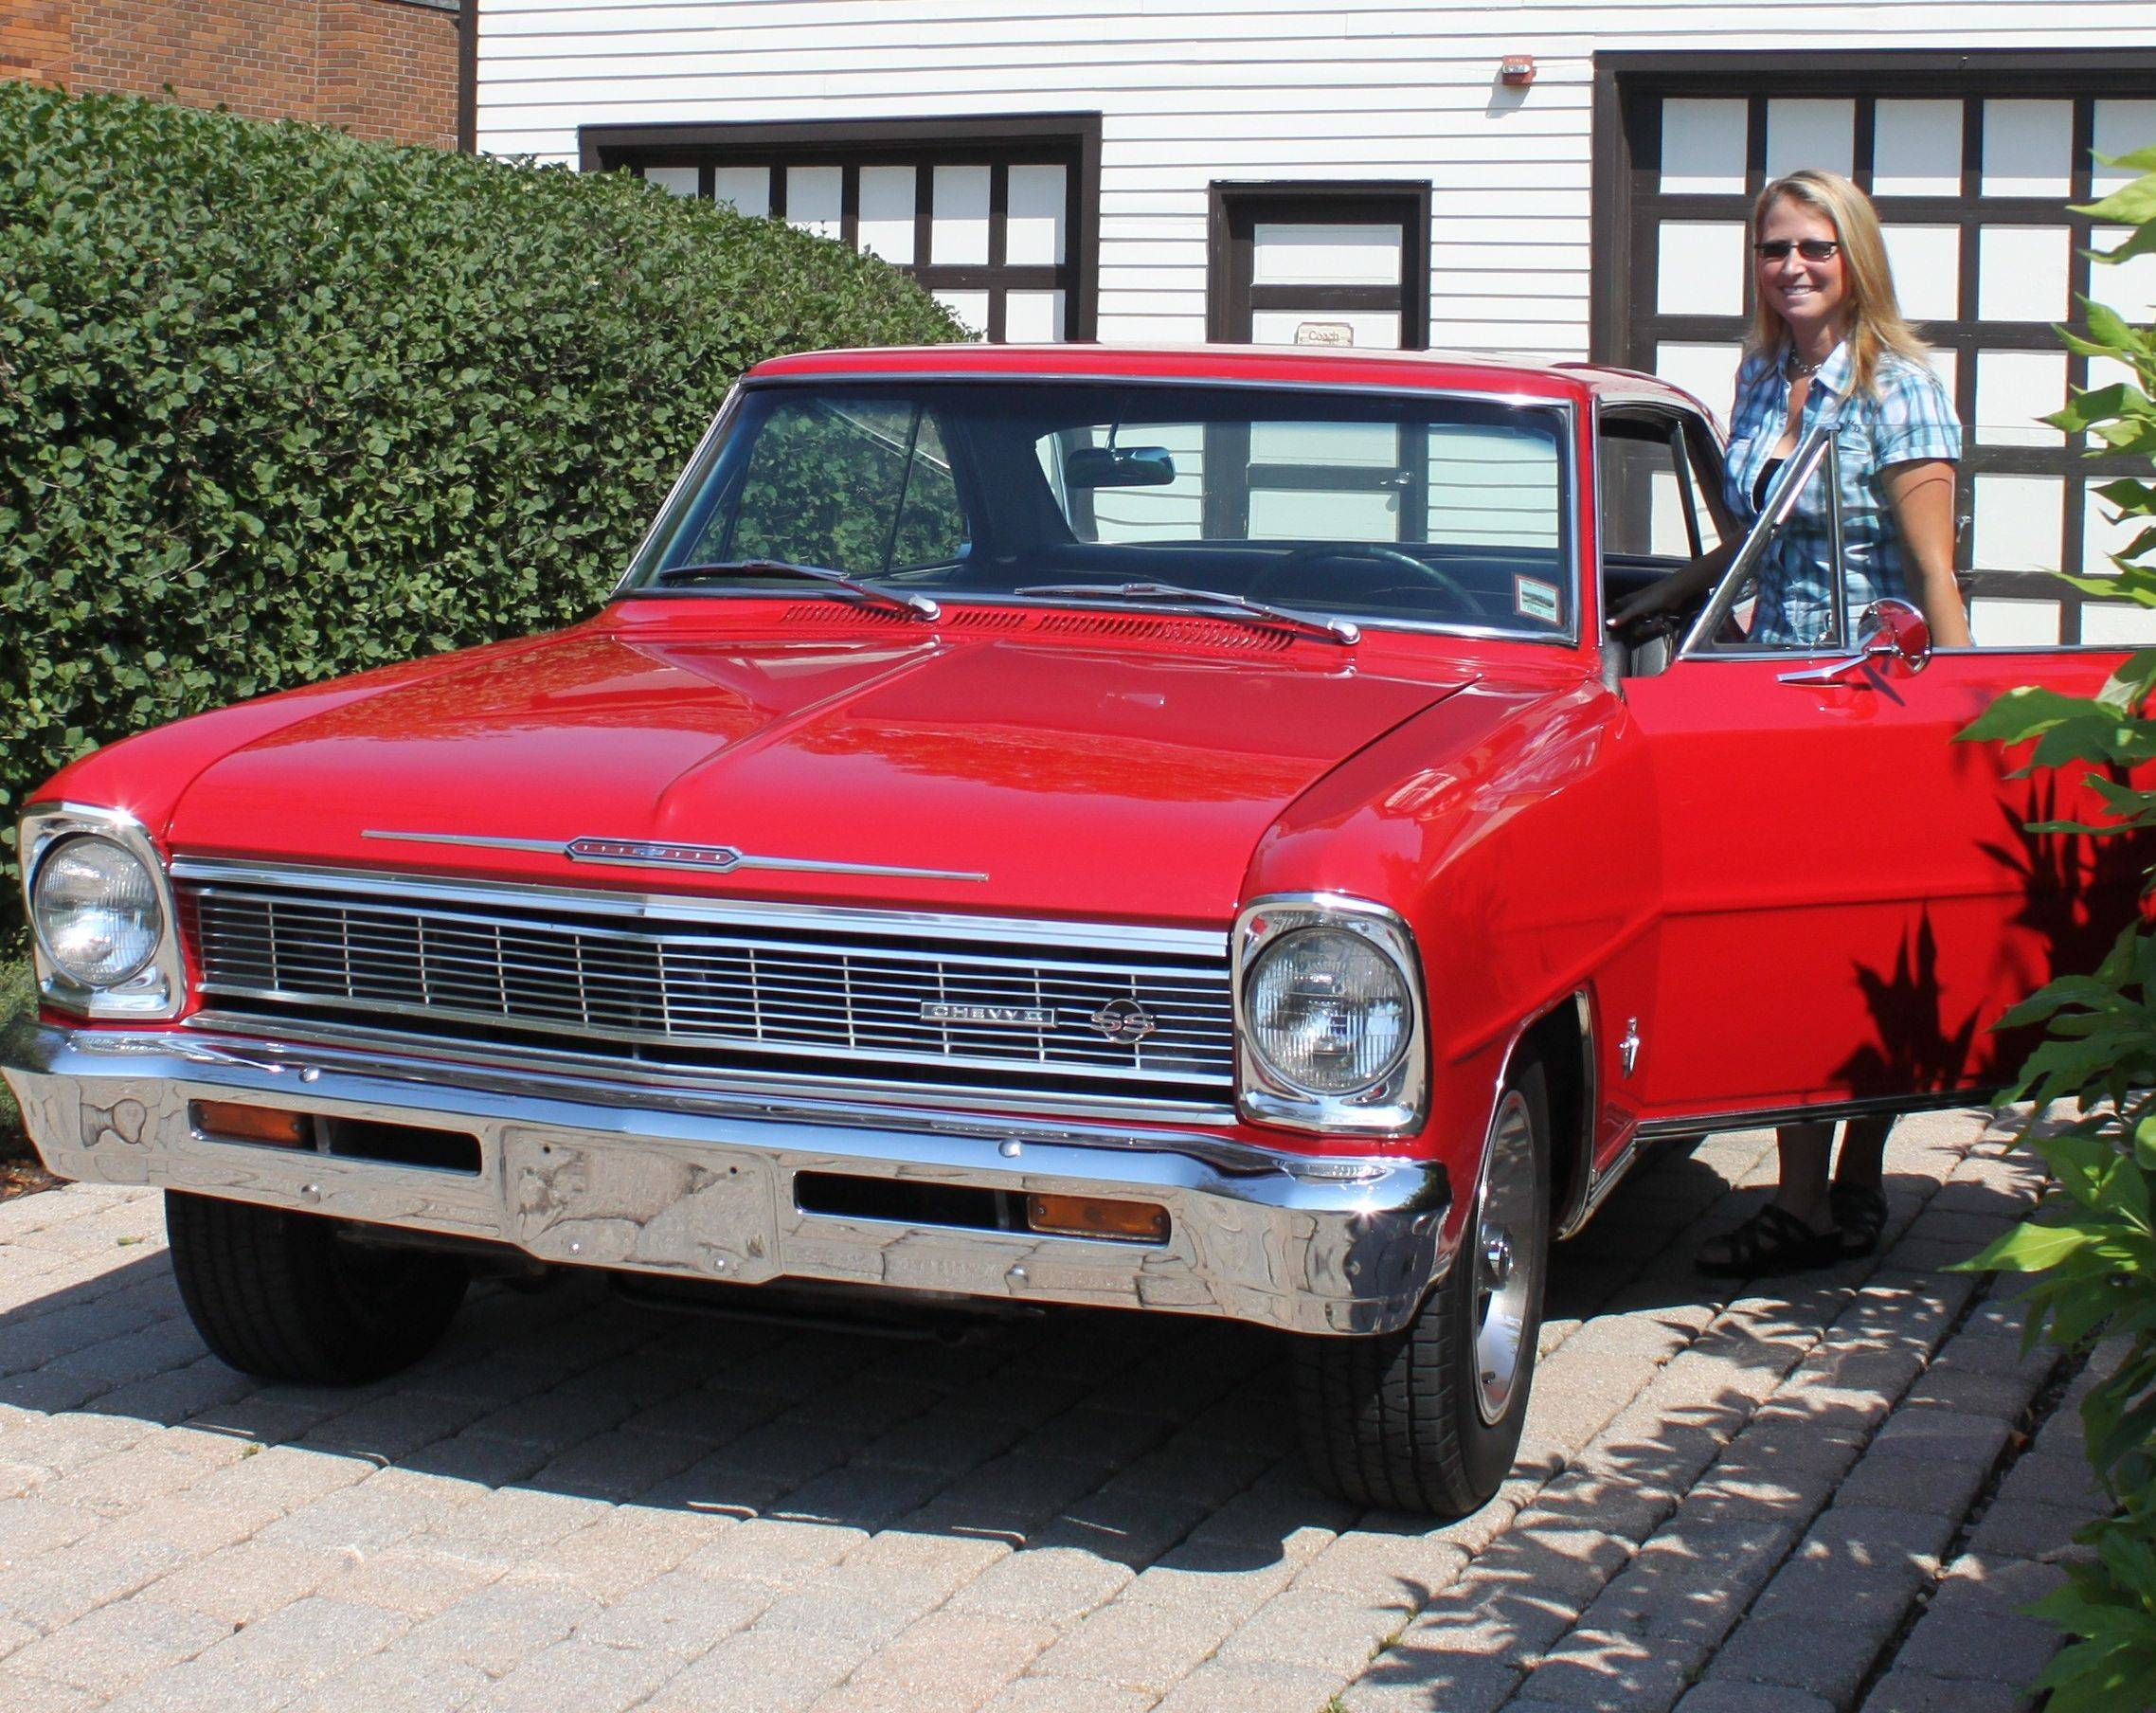 Kristina Christie and her beloved 1966 Chevy II Nova SS.